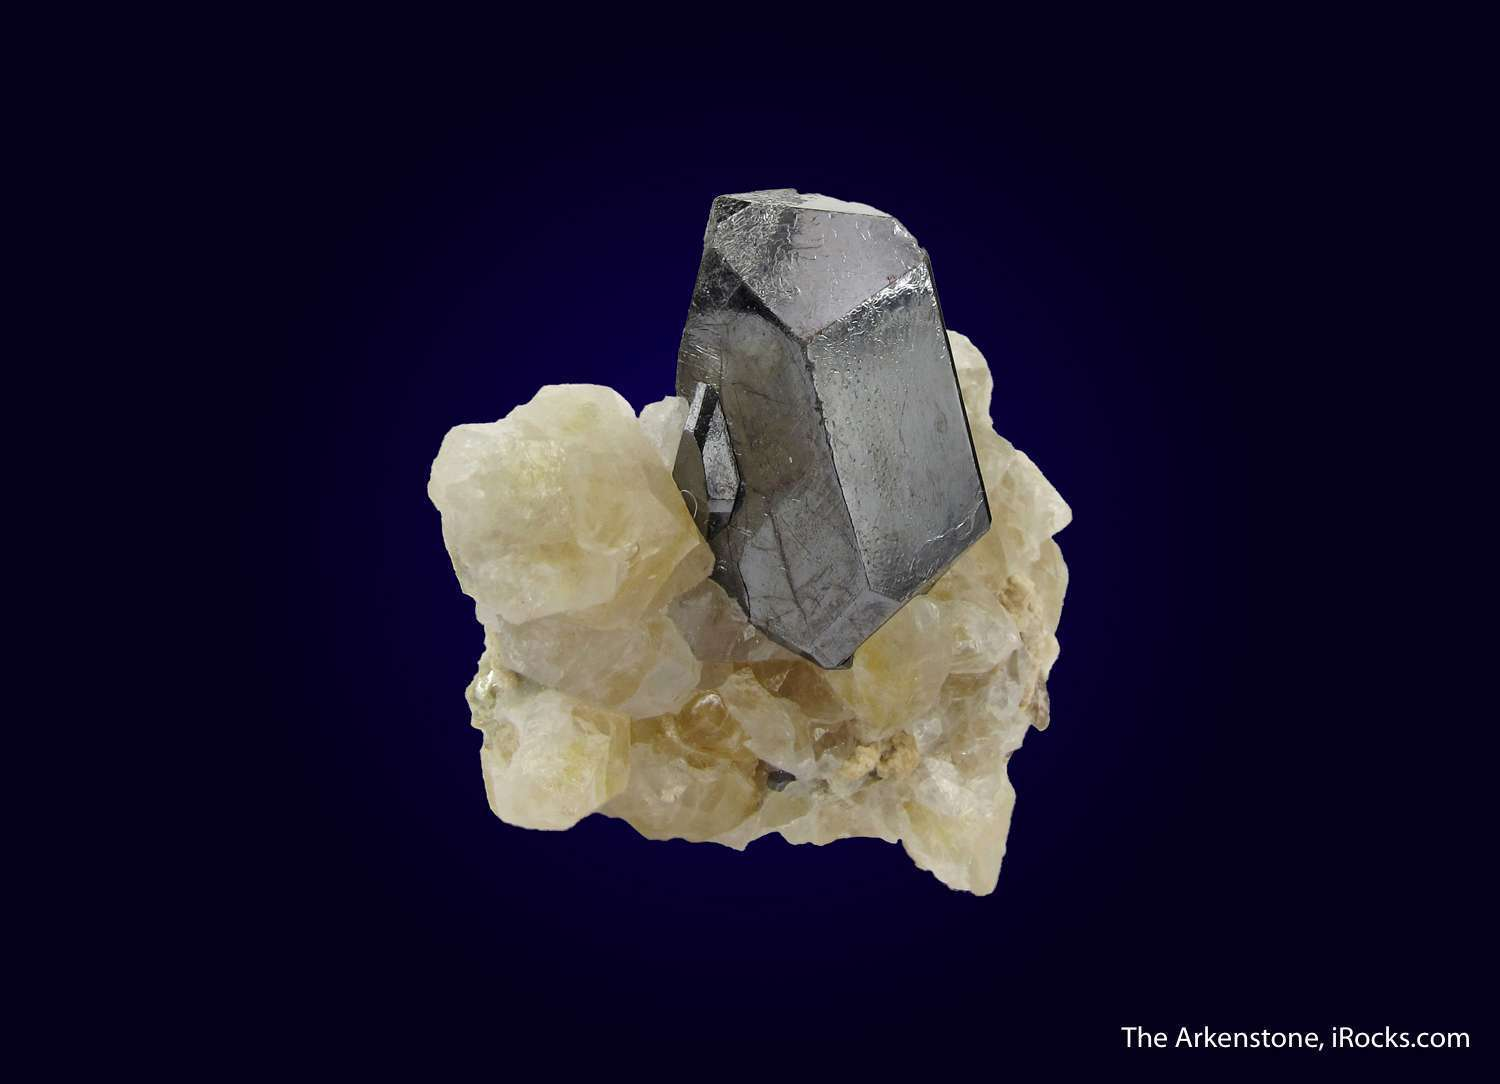 This lustrous super sharp Rutile crystal dramatically perched matrix